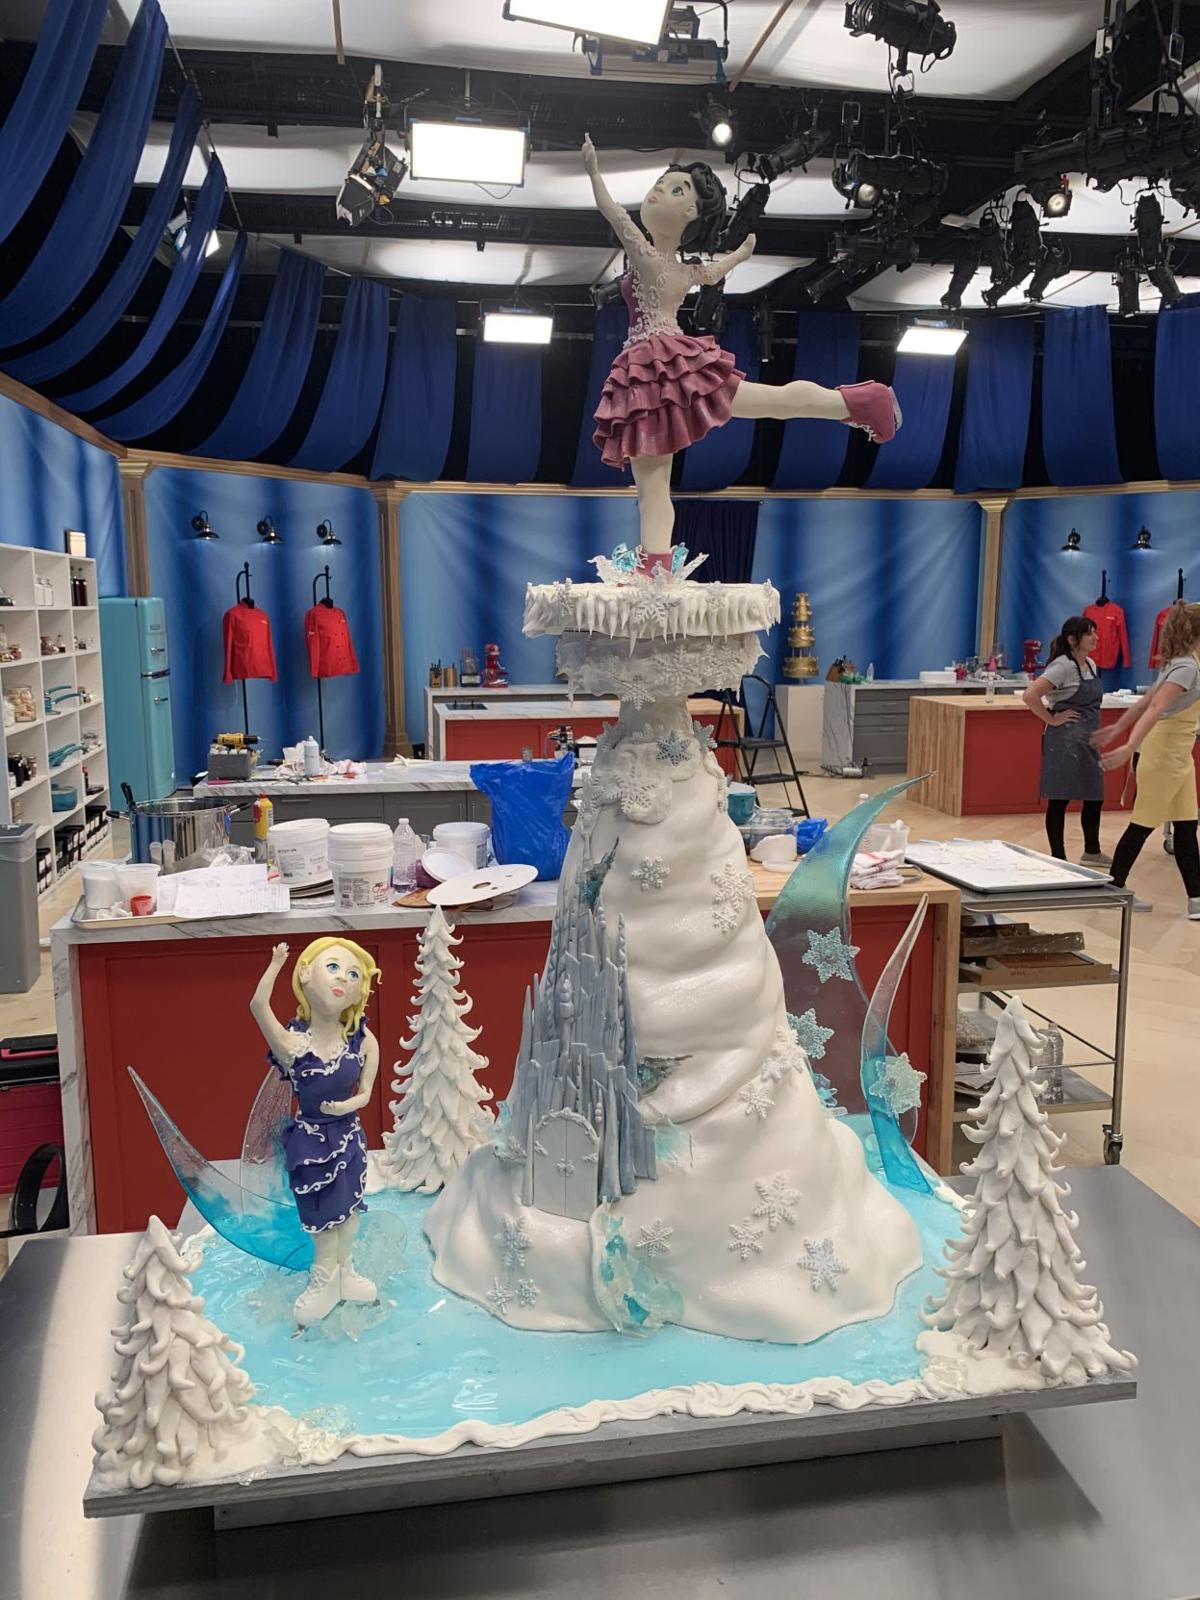 Colorado Springs pastry chef wins $10,000 in reality TV baking contest